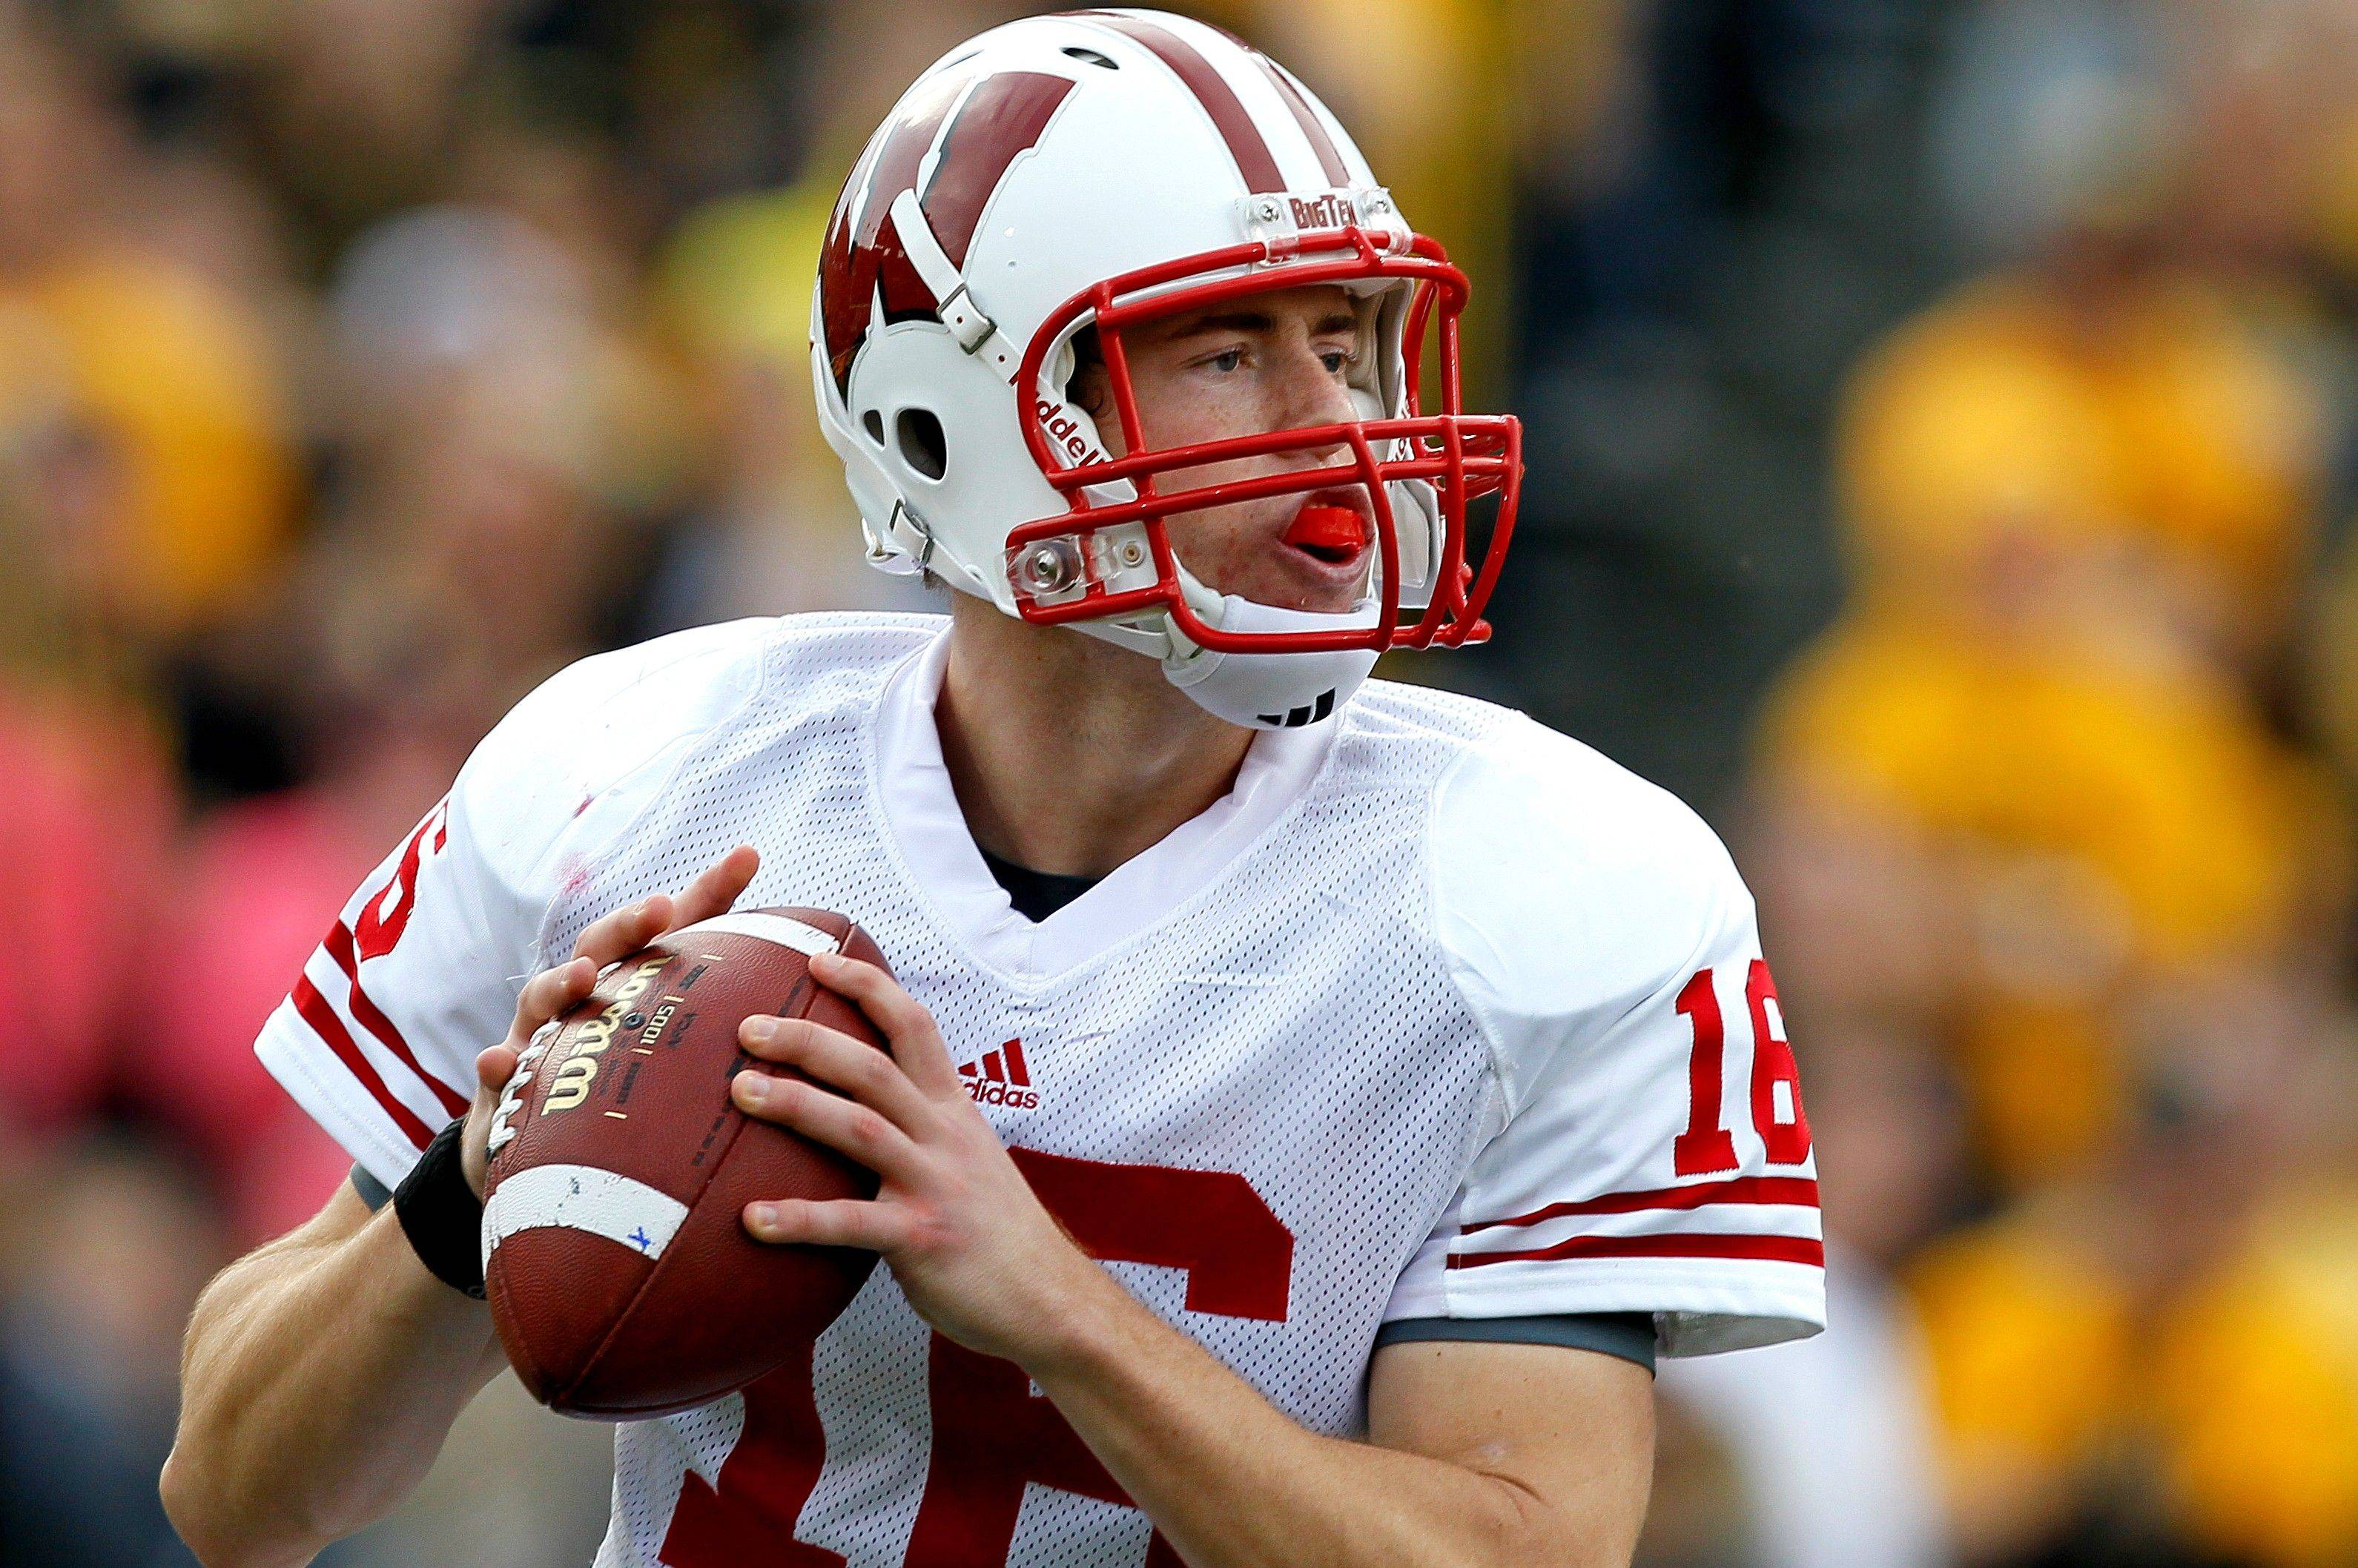 Scott Tolzien is 20-4 as a starting quarterback for Wisconsin since he won the job.